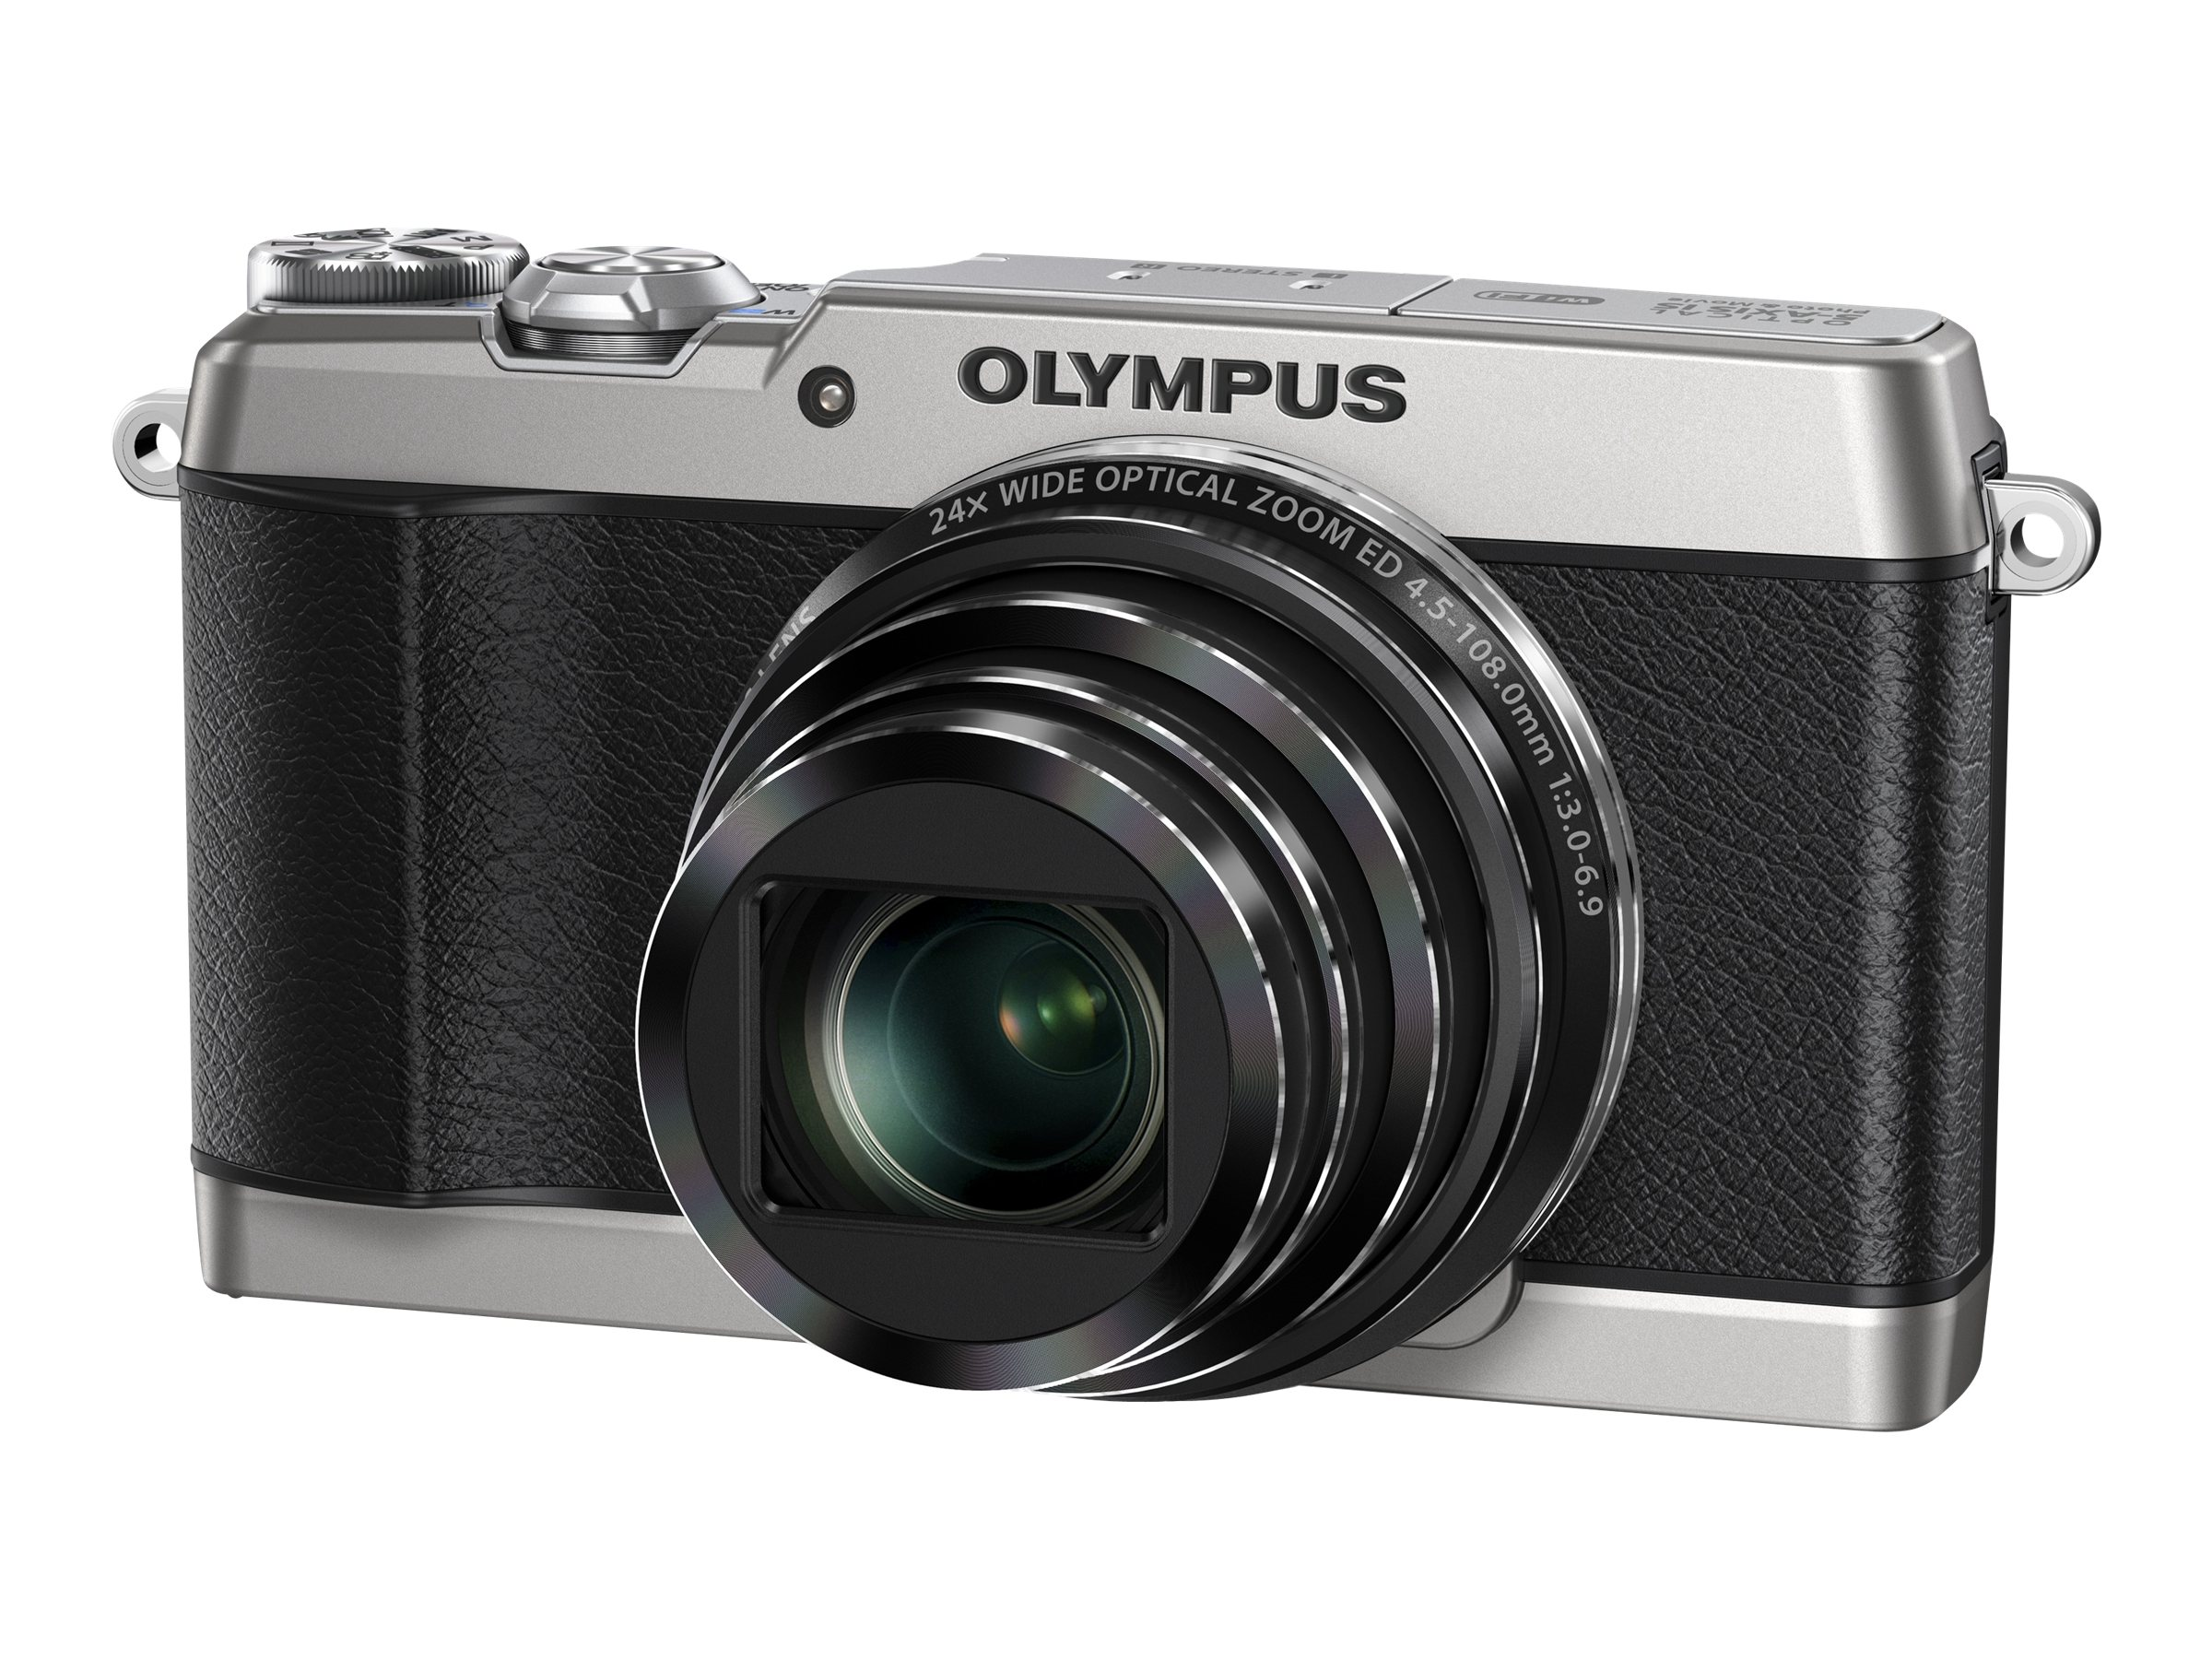 Olympus Stylus SH-1 Digital Camera, 16MP, Silver